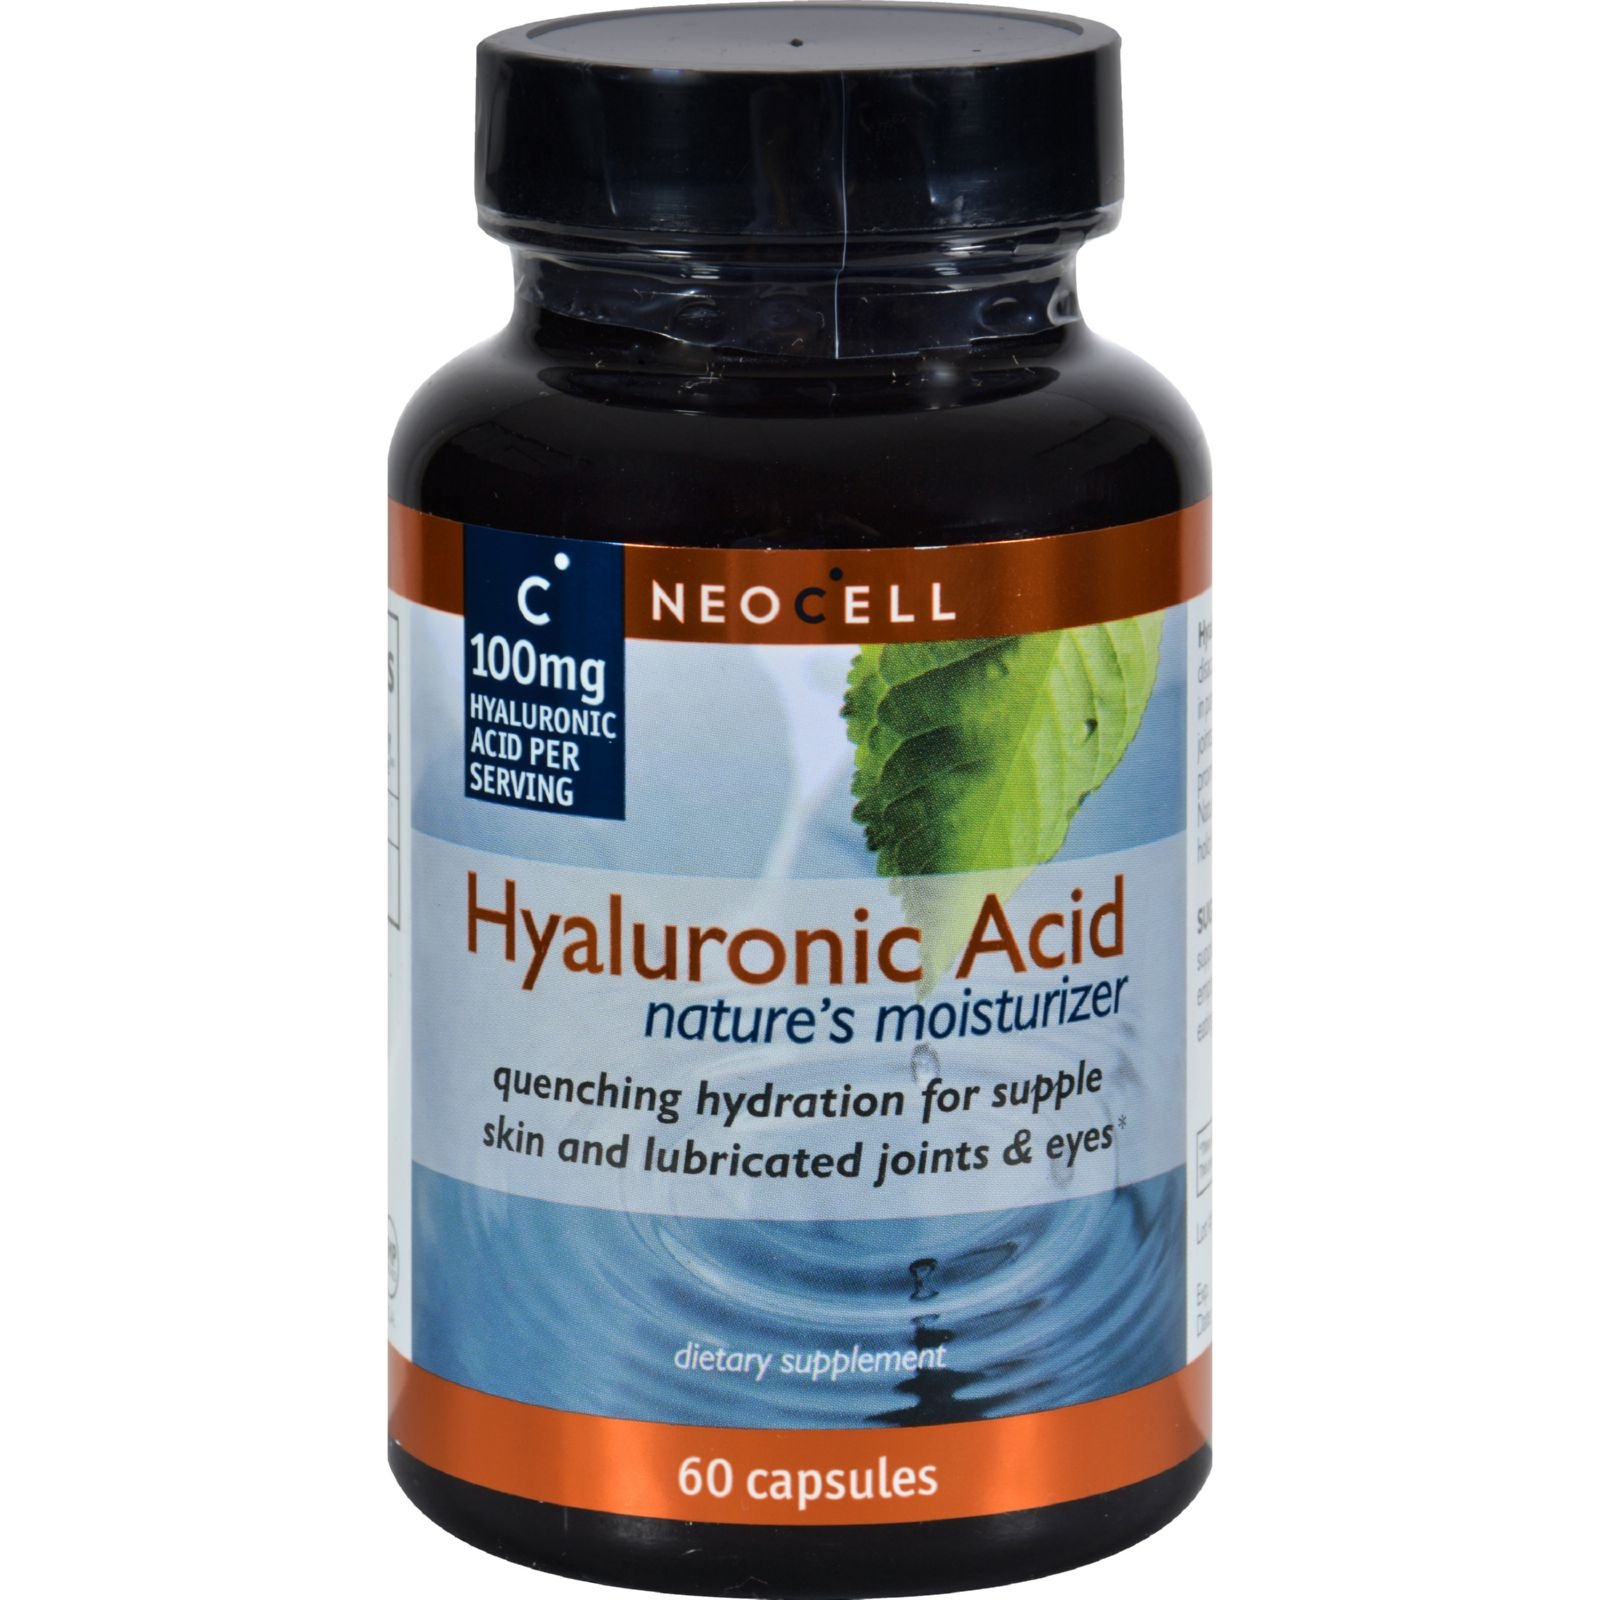 NeoCell Hyaluronic Acid - Essential lubricant of healthy joints, skin, and eyes - Gluten Free - 60 Capsules (Pack of 2)